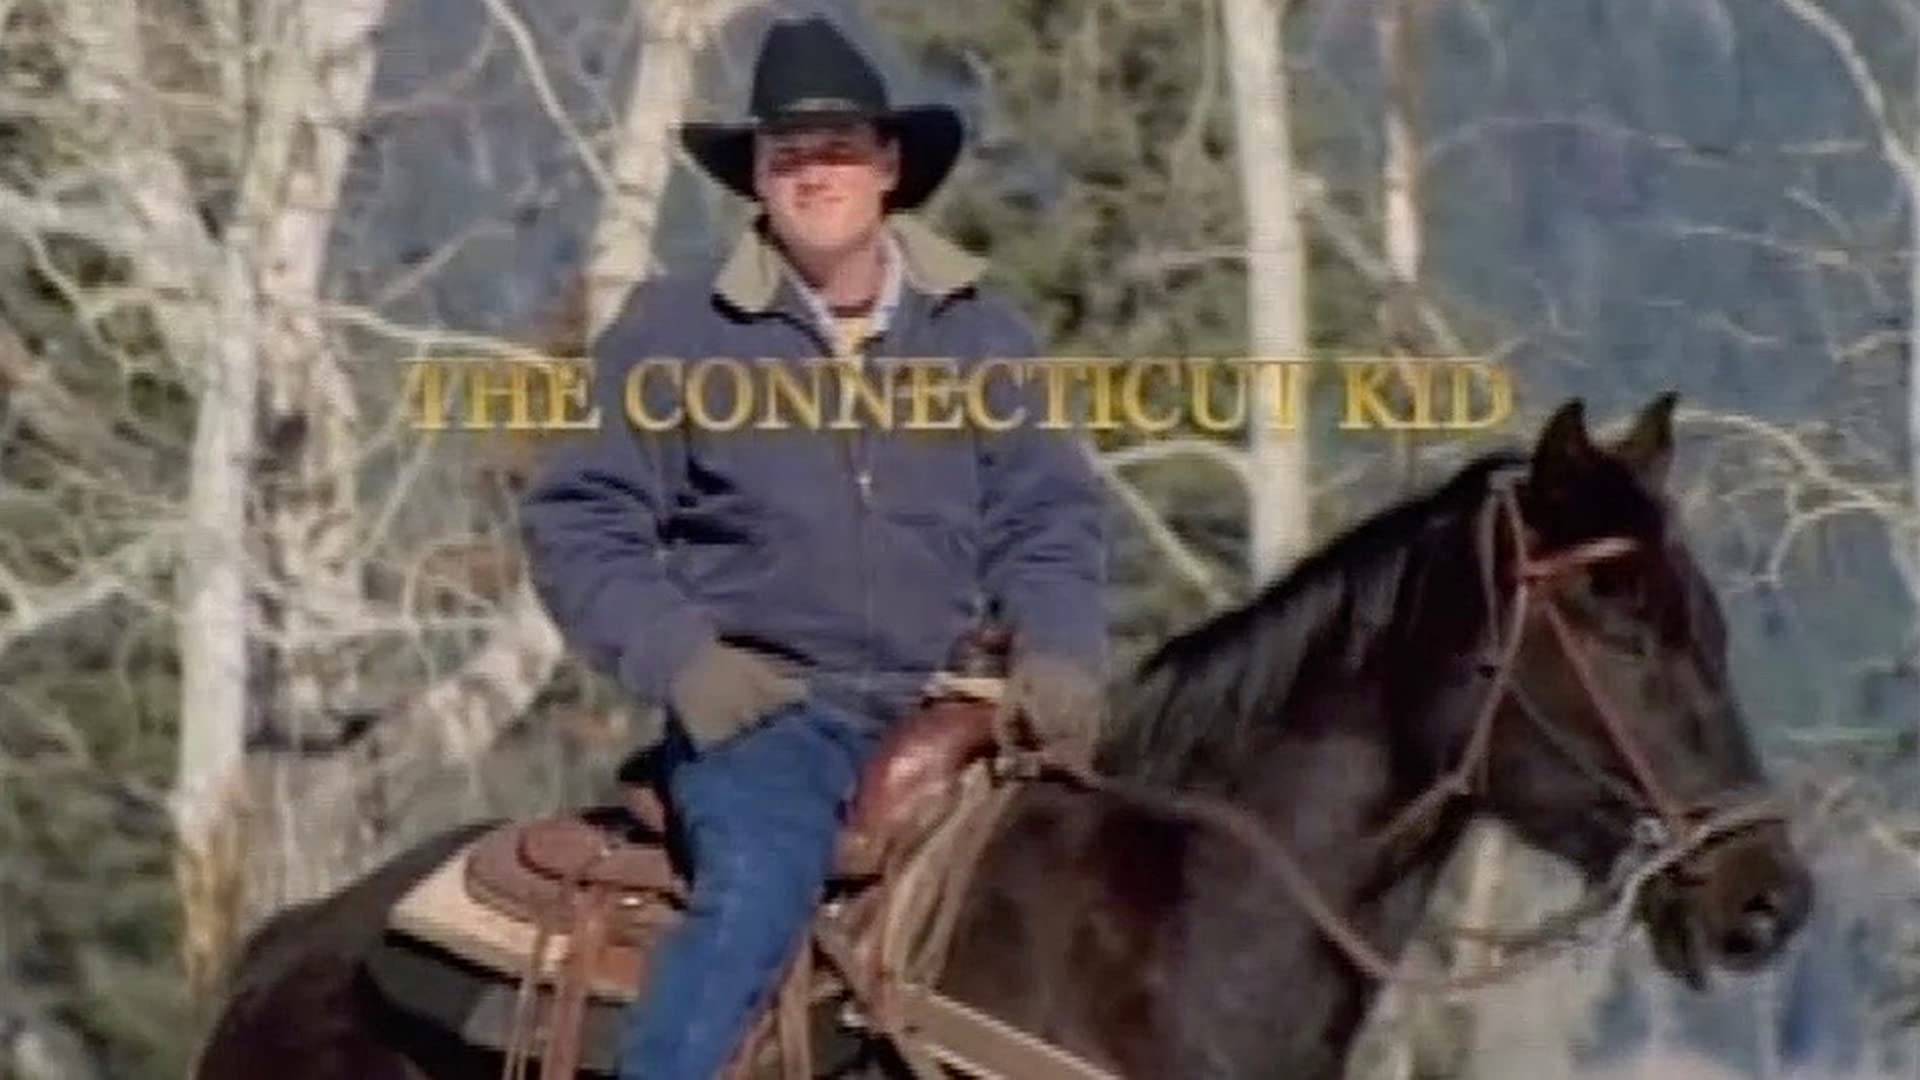 The Connecticut Kid